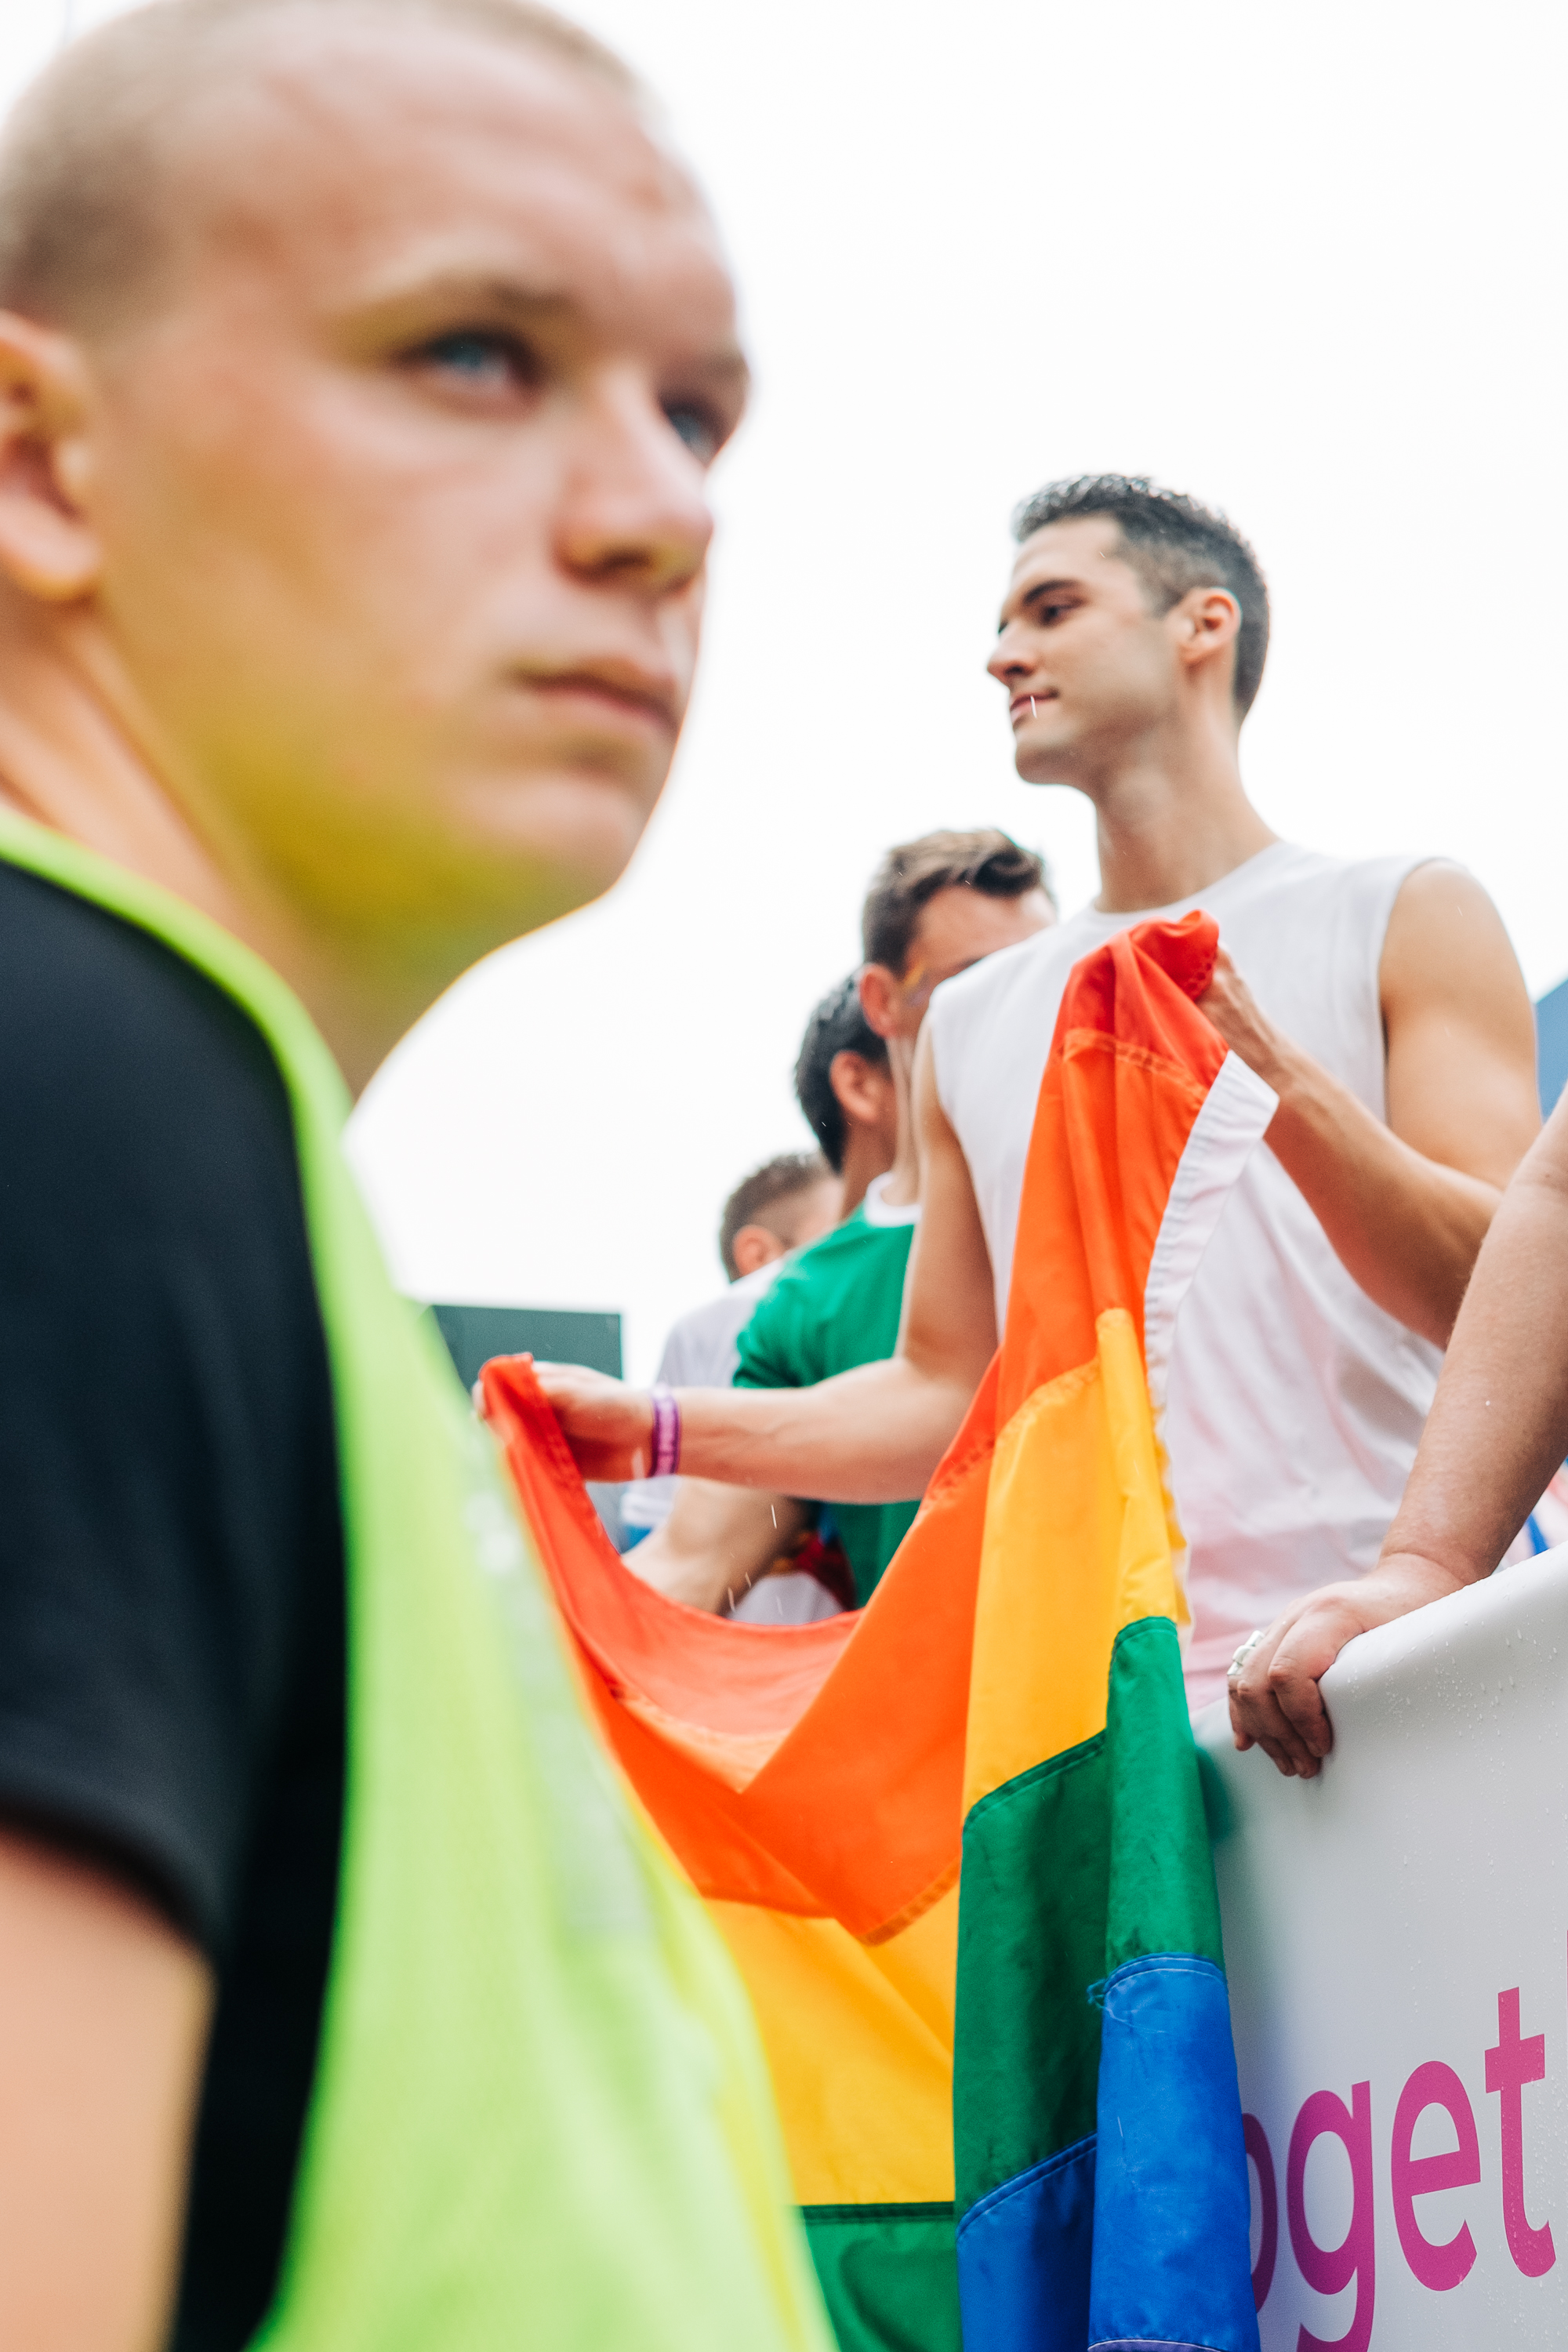 Prague Pride 2019 (9 of 47).jpg